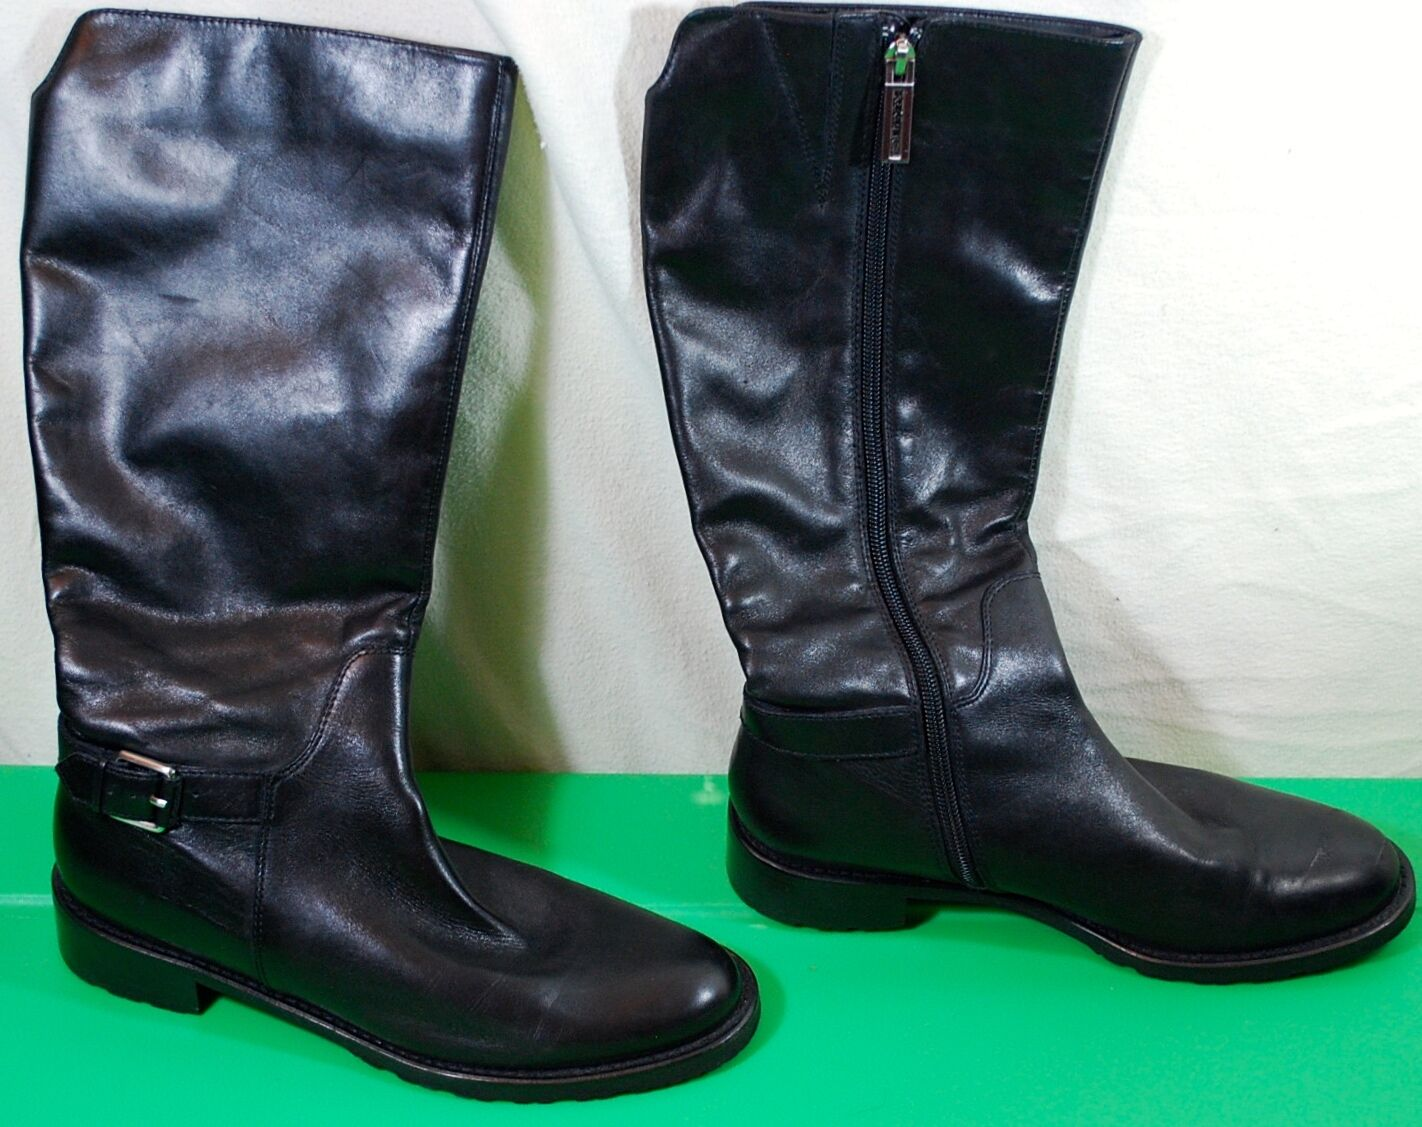 Calvin Klein  EQUESTRIAN Boots Rumer Black Riding Boots  Leather Size 7.5 M